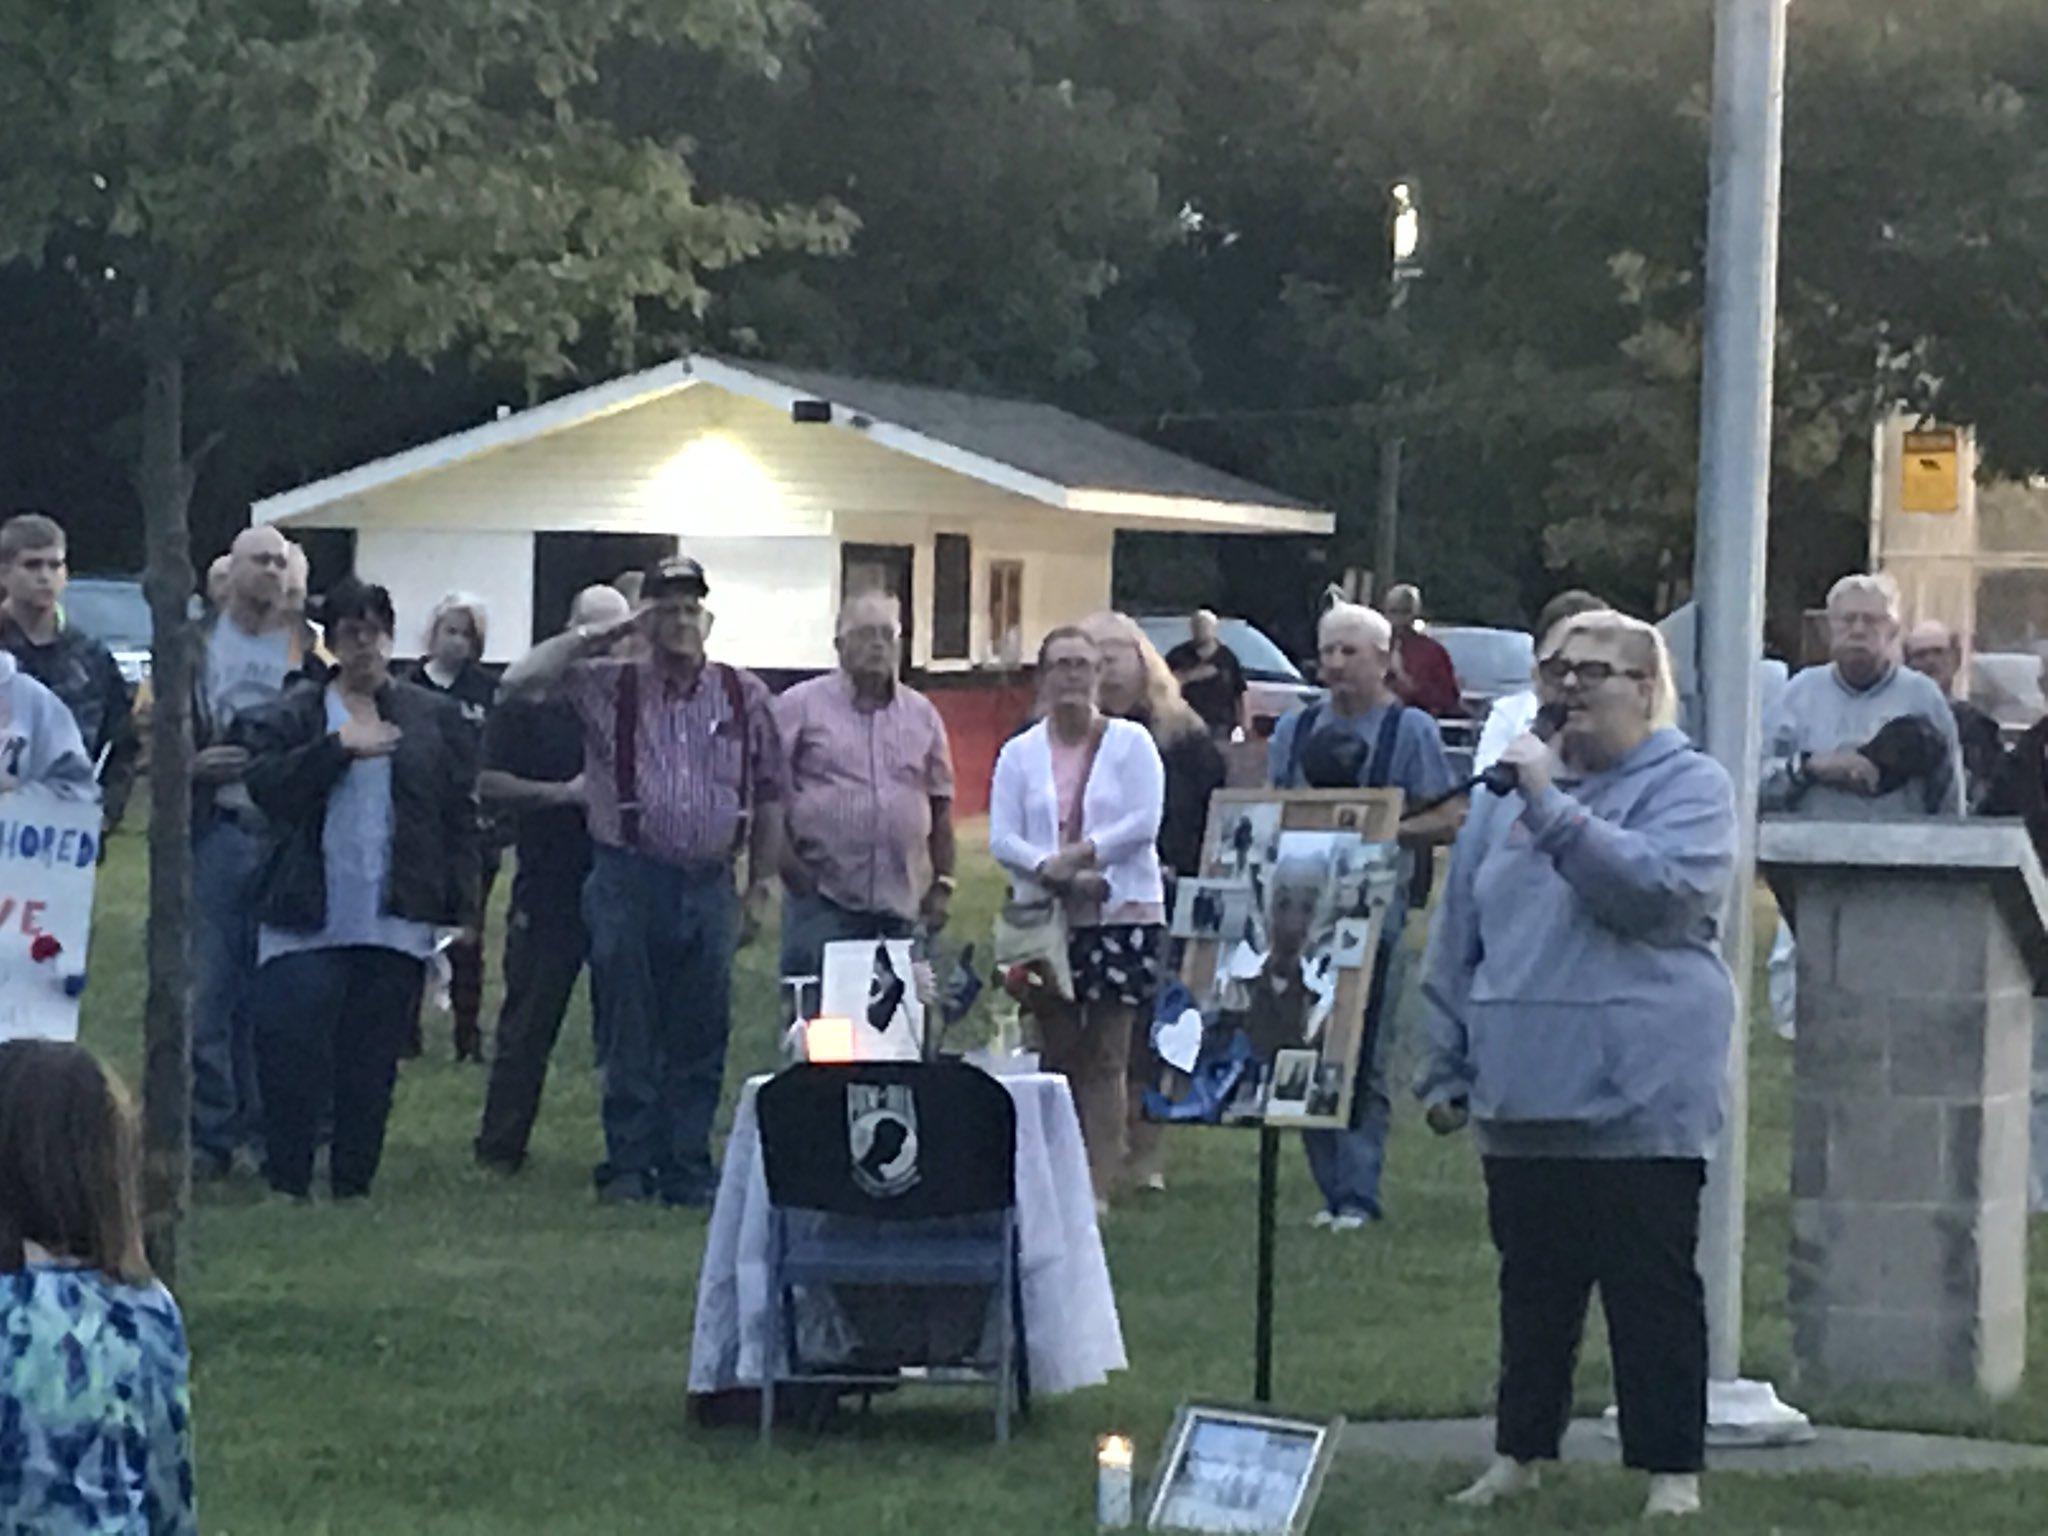 The town of North Lewisburg united to remember the life of a Navy man they hope will still be found alive. (WSYX/WTTE)